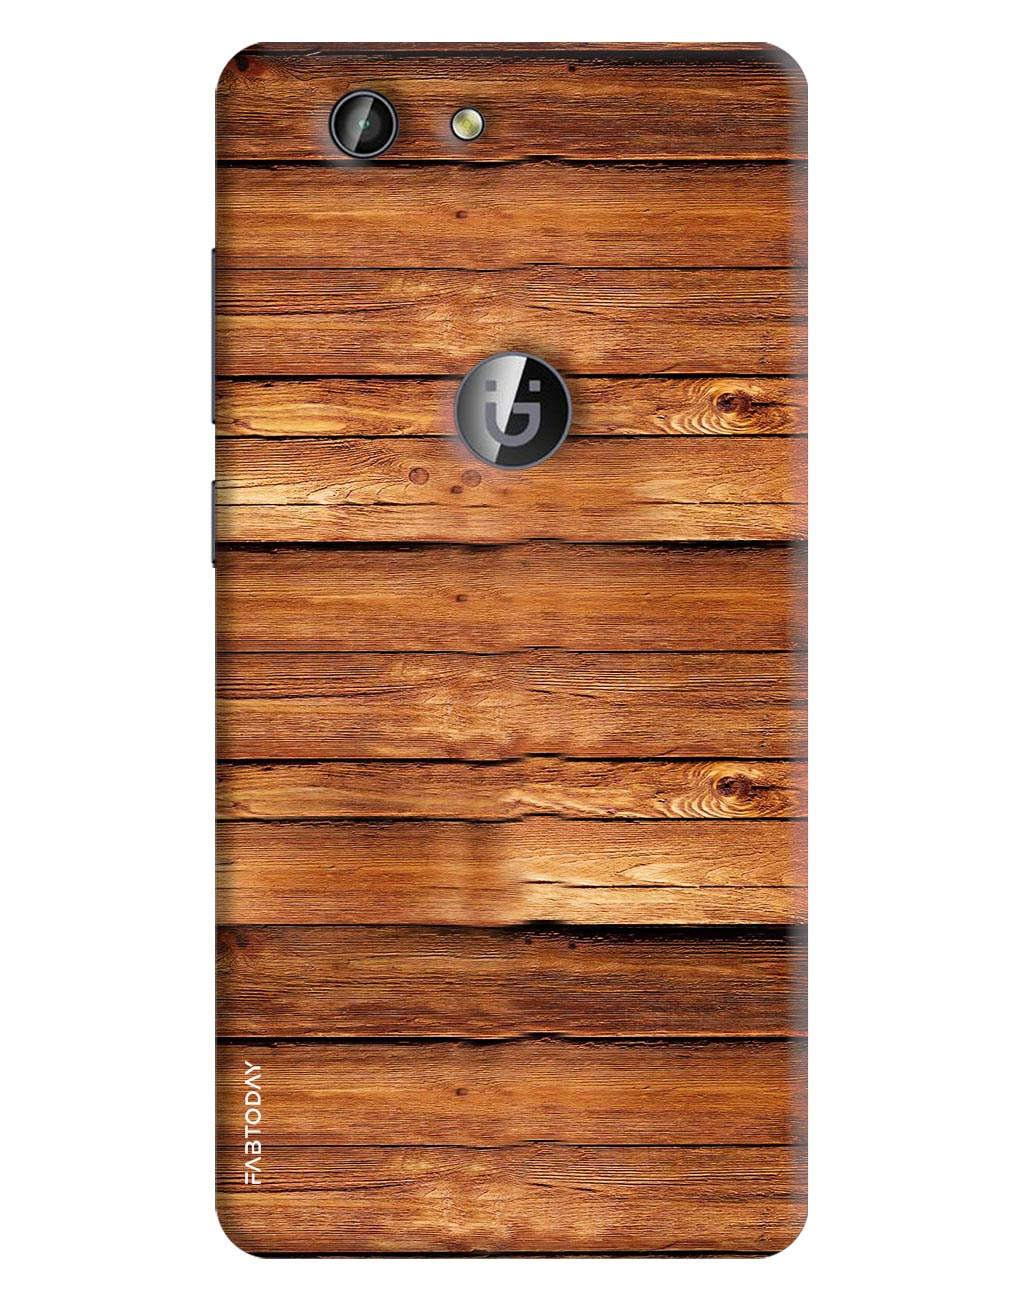 Wooden Back Cover for Gionee F103 Pro